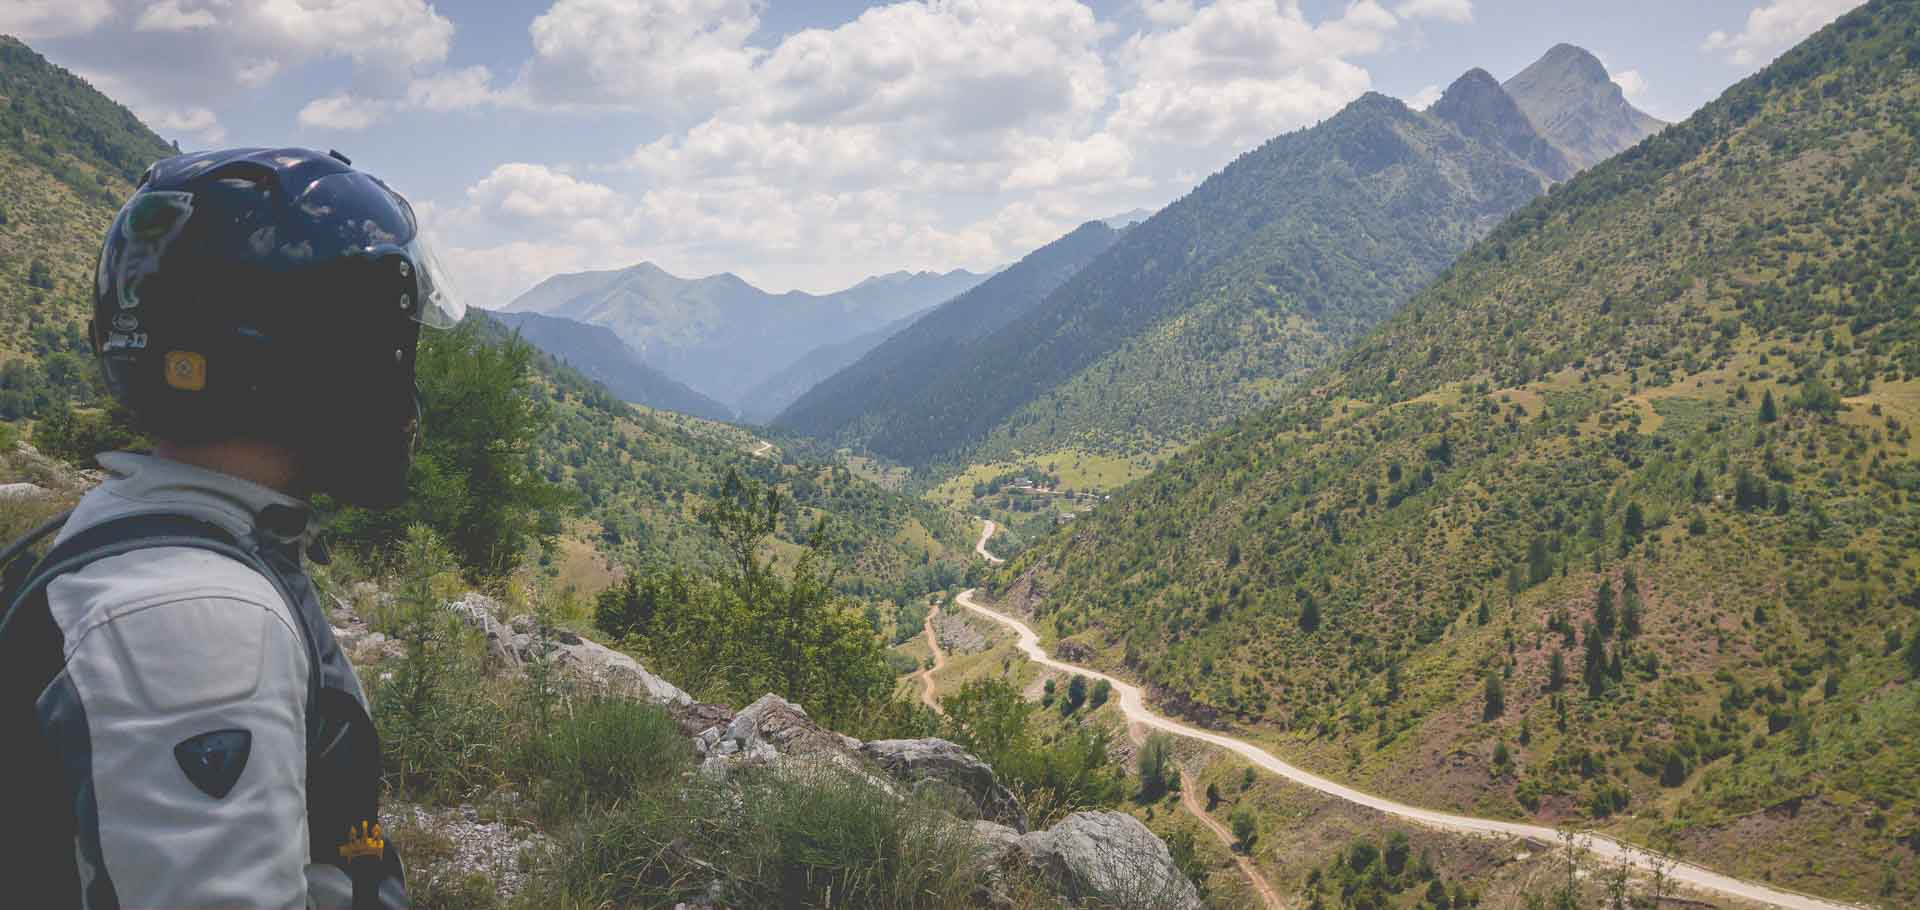 Motorcycling and Landscapes of Tzoumerka